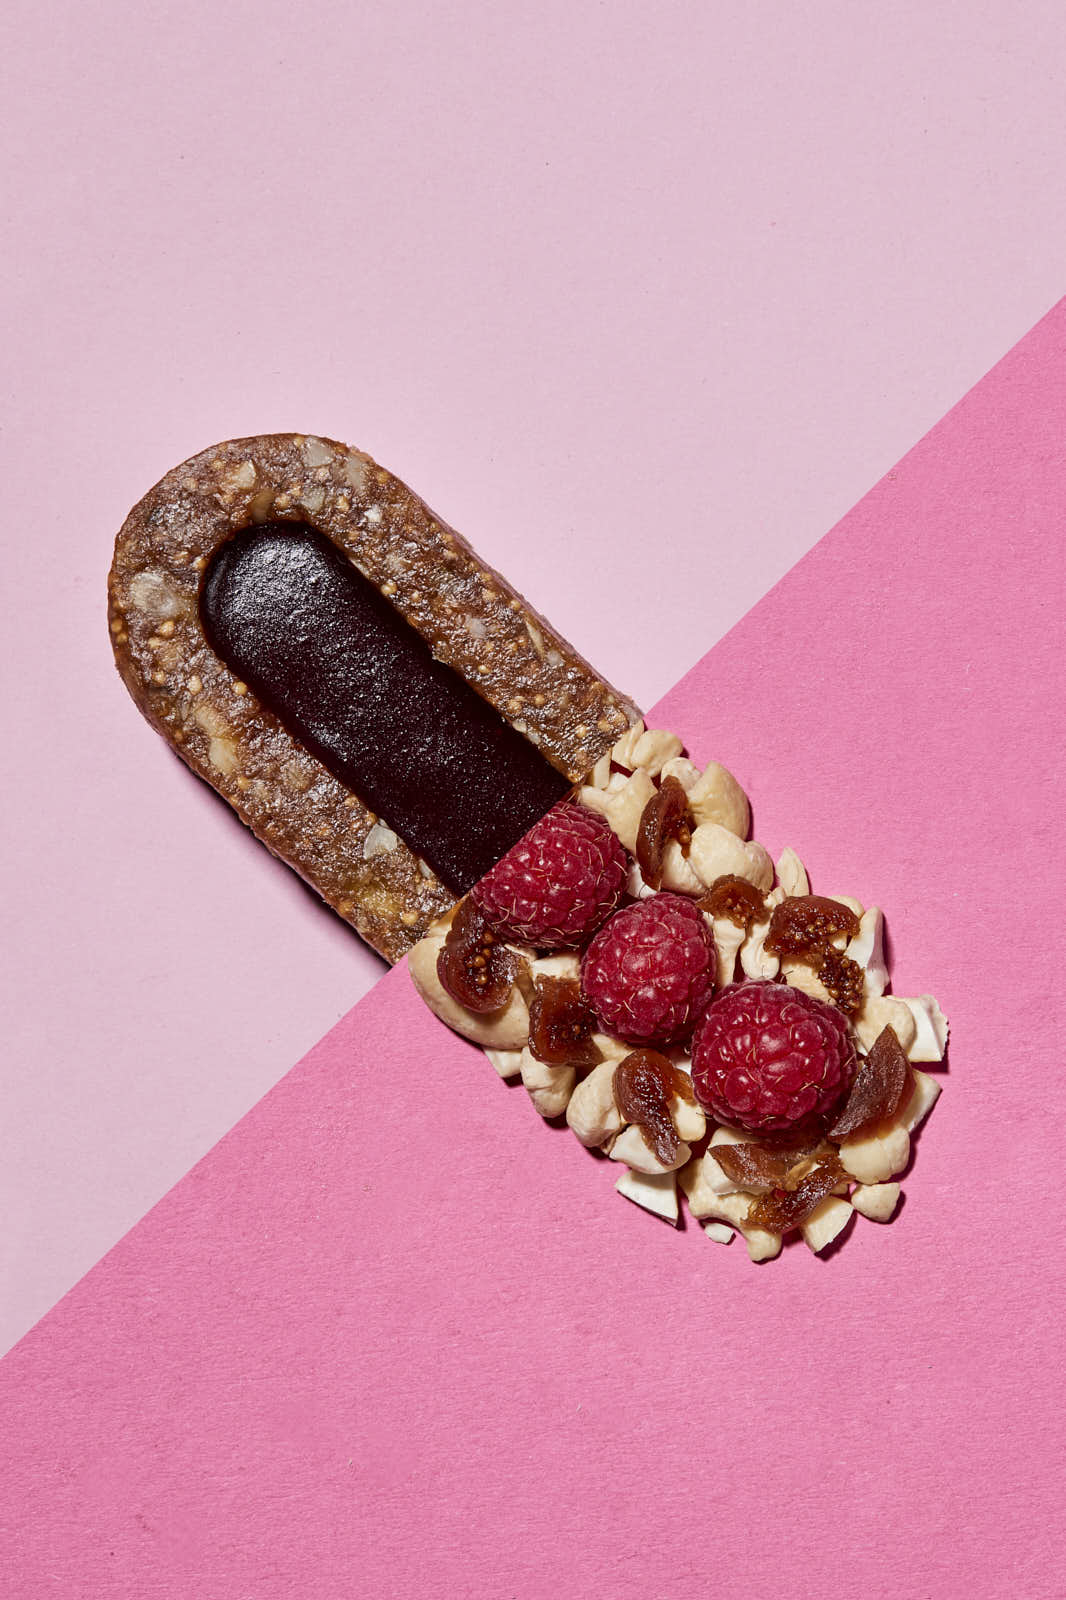 creative geometric pink food photography of a Bunch bar with raspberry flavour